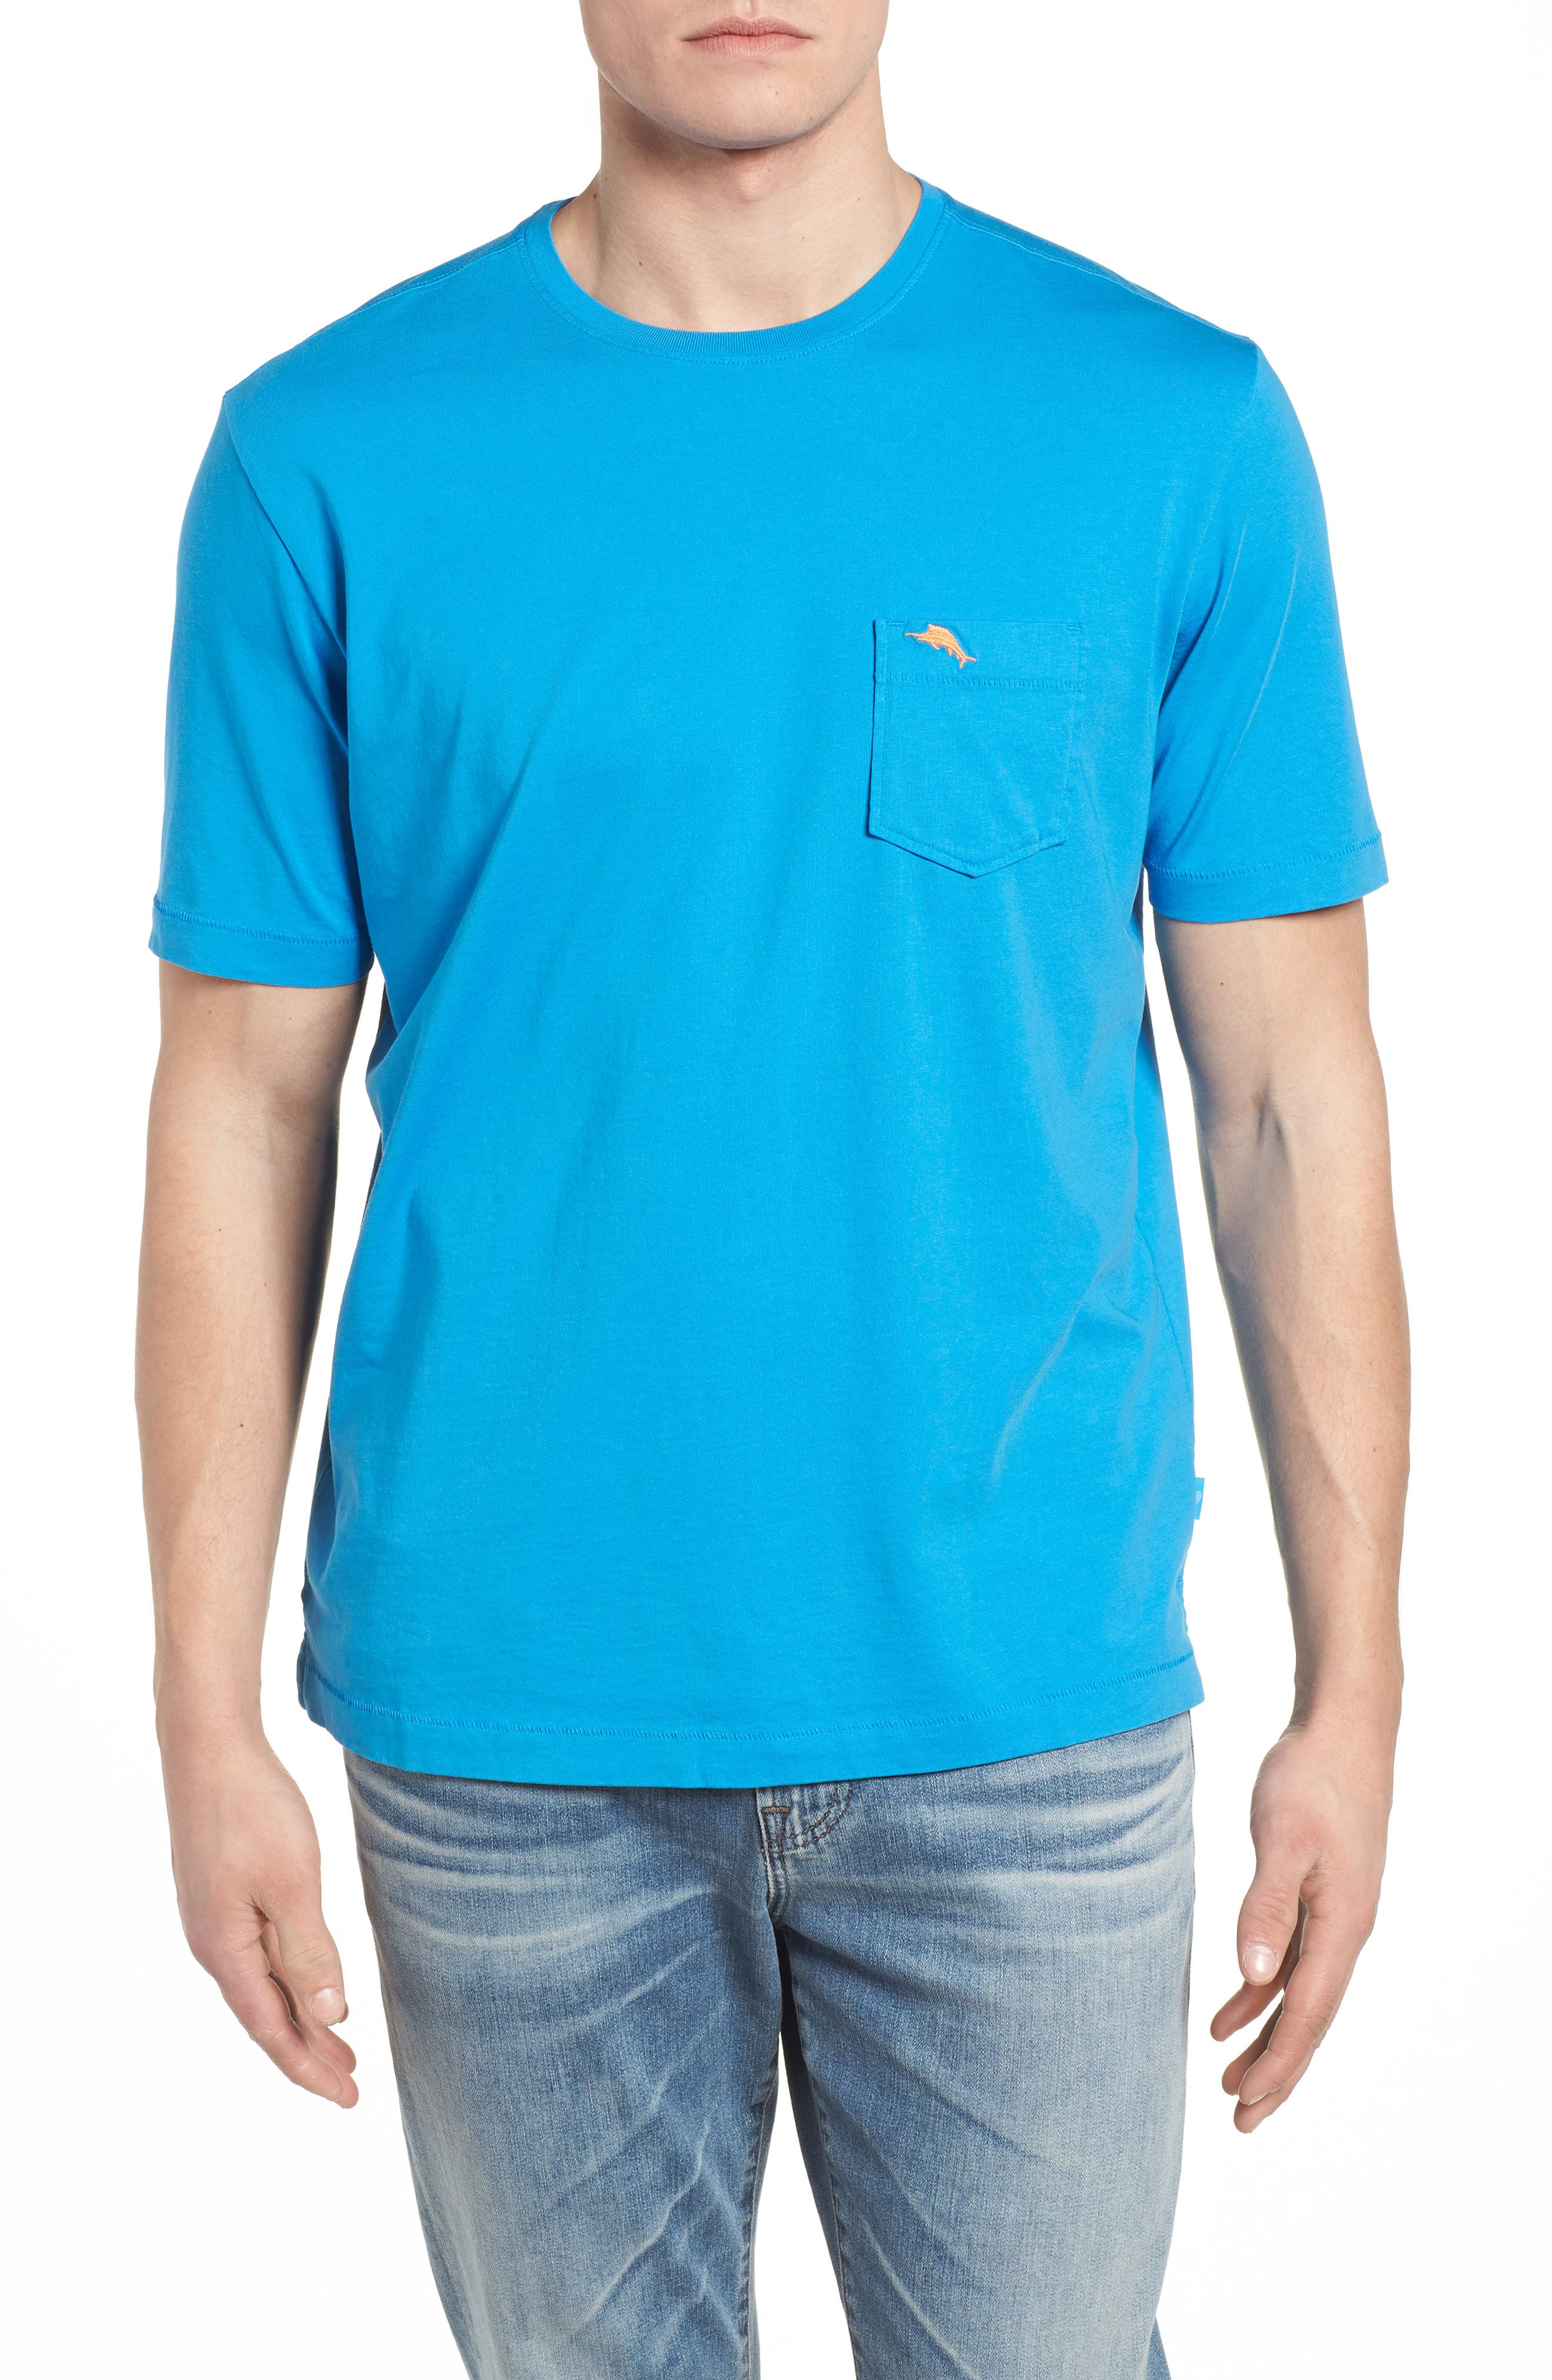 New Bali Skyline T-Shirt,                             Main thumbnail 1, color,                             Blue Canal